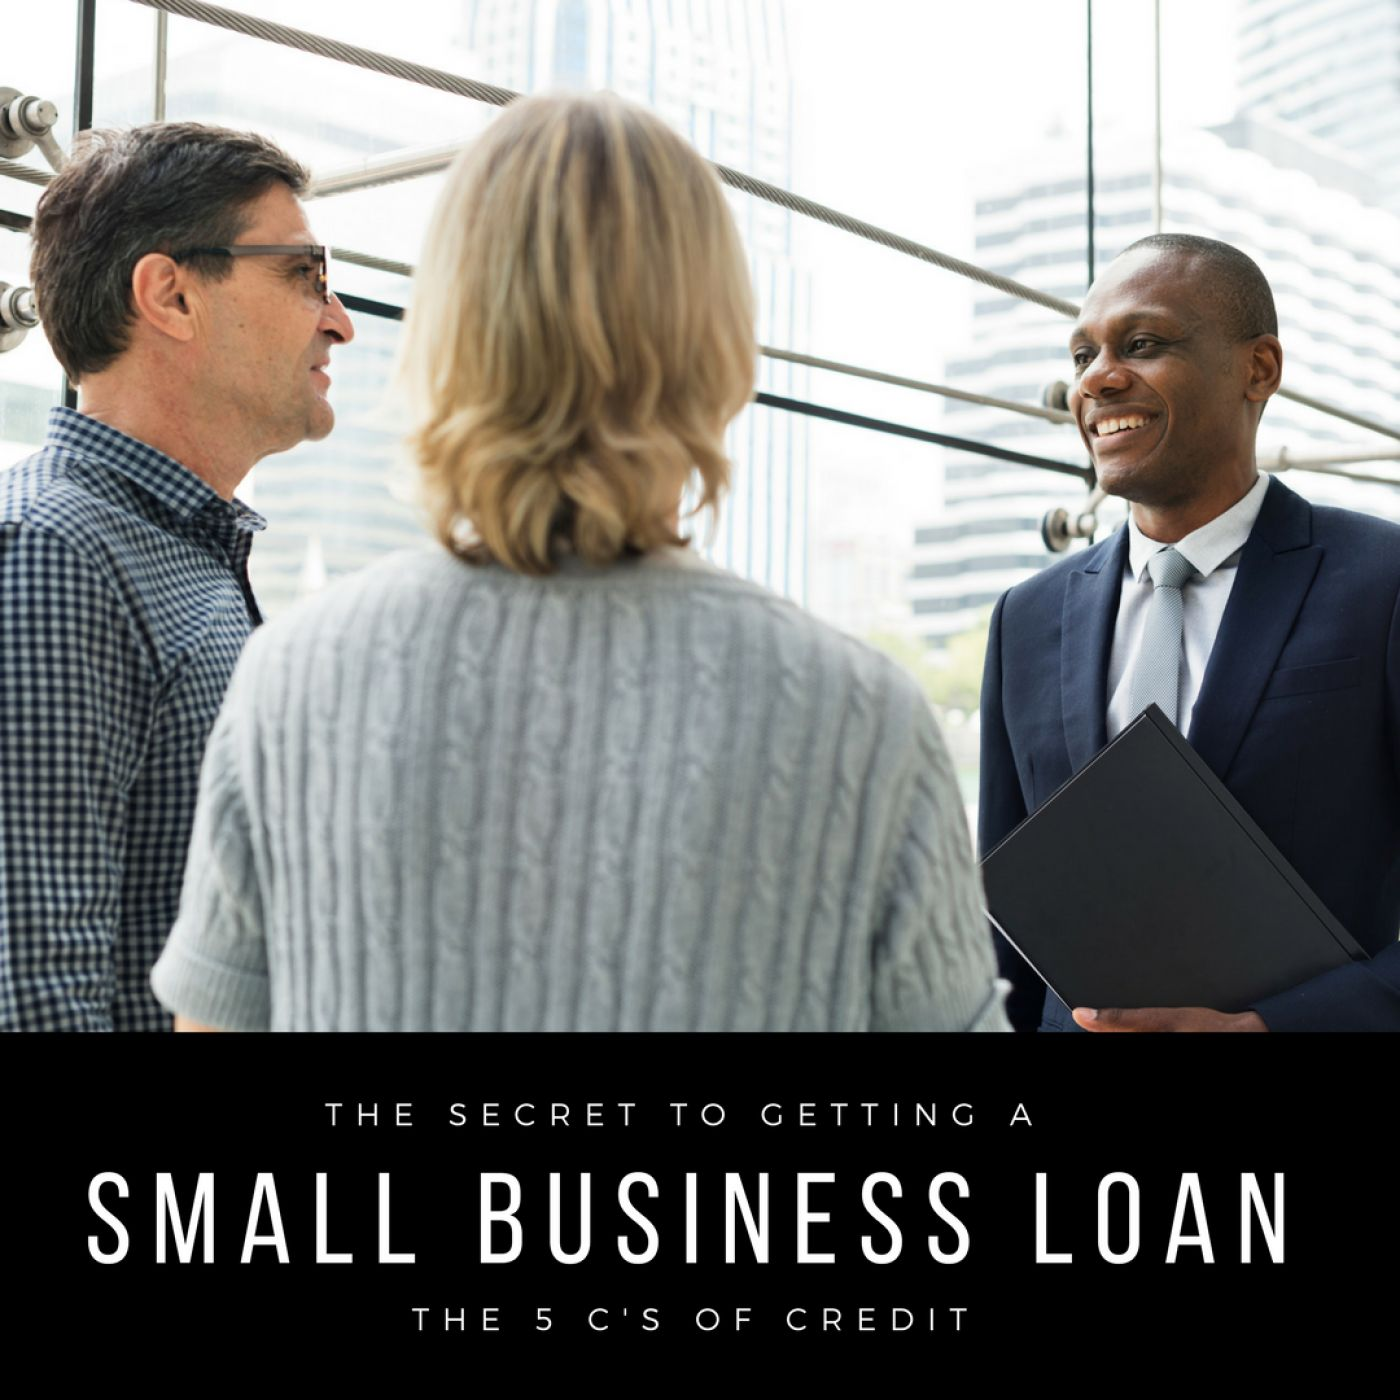 The Secret to Receiving Small Business Loans: The 5 C's of Credit